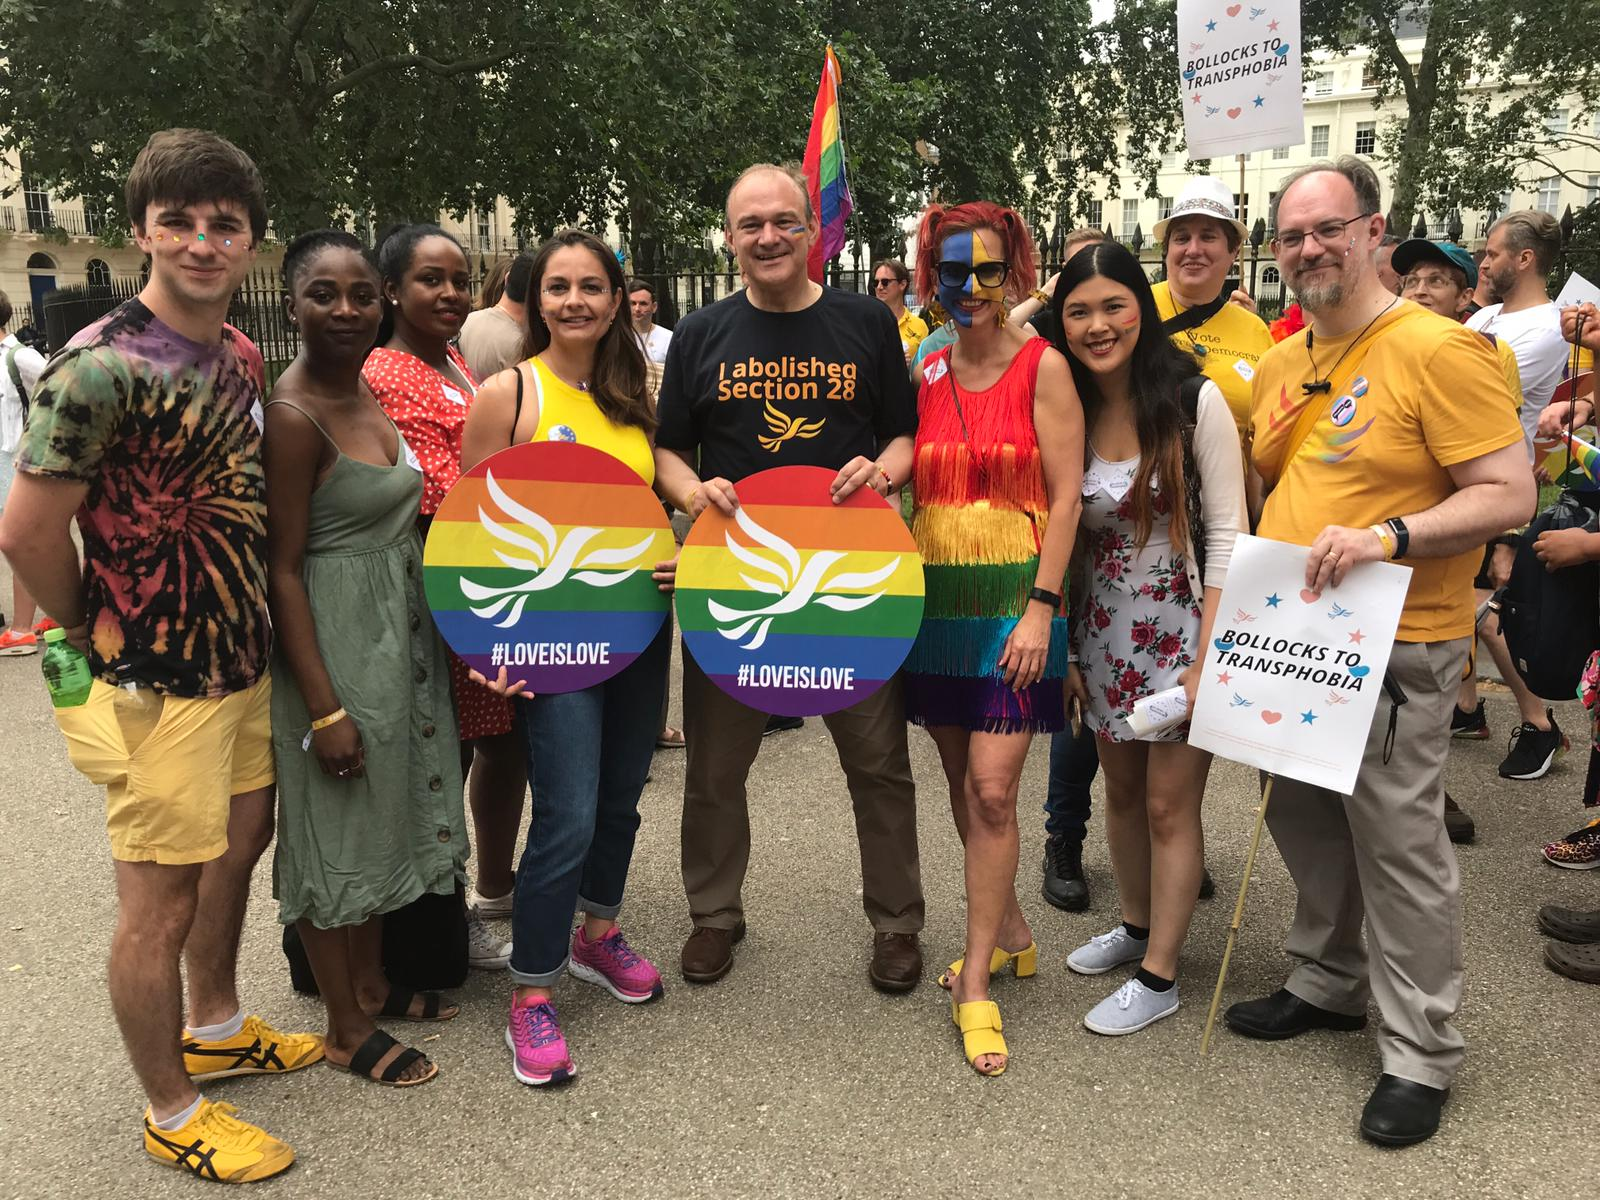 Haringey backs LGBT+ inclusive education (and vows not to let protests disrupt schools)